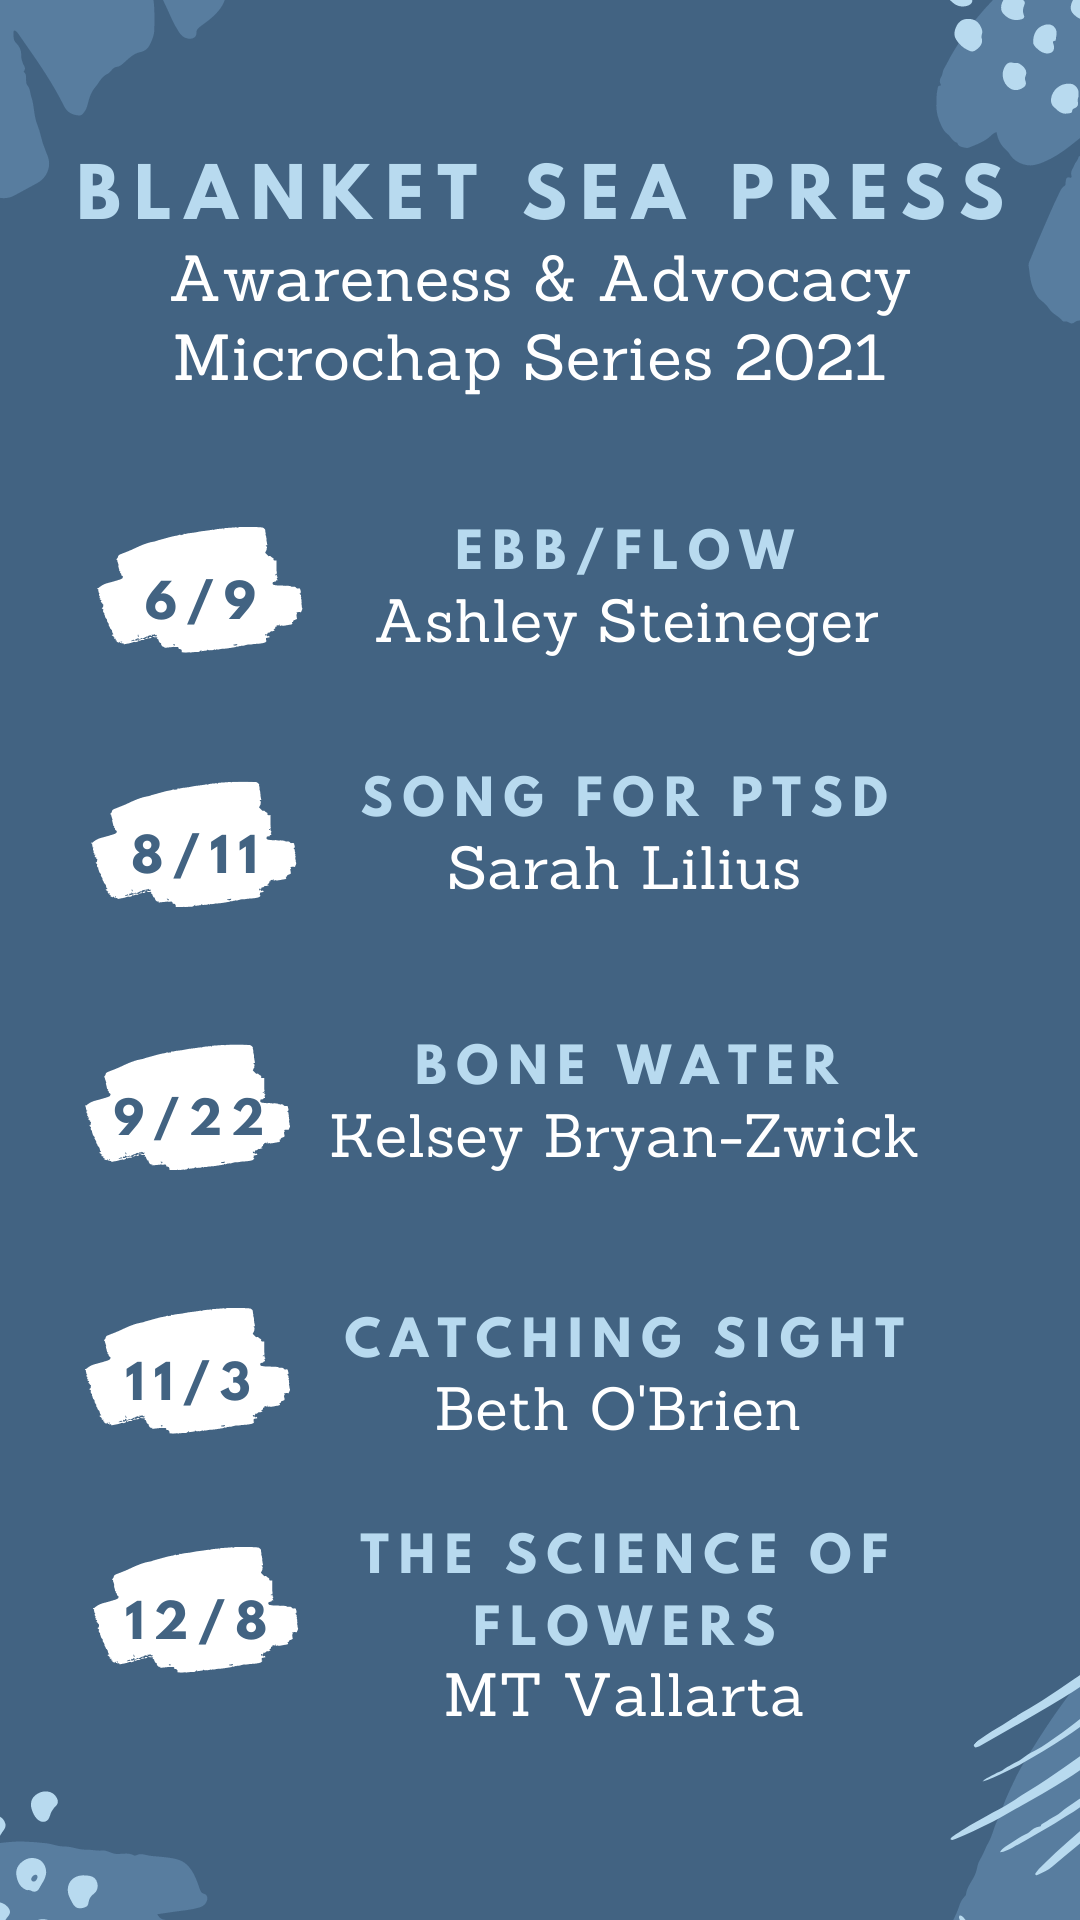 Announcement graphic, blue background with embellishments. Blanket Sea Press Awareness & Advocacy Microchap Series 2021. Ebb/Flow by Ashley Steineger - June 9 + Song for PTSD by Sarah Lilius - August 11* Bone Water by Kelsey Bryan-Zwick - September 22* Catching Sight by Beth O'Brien - November 3 The Science of Flowers by MT Vallarta - December 8